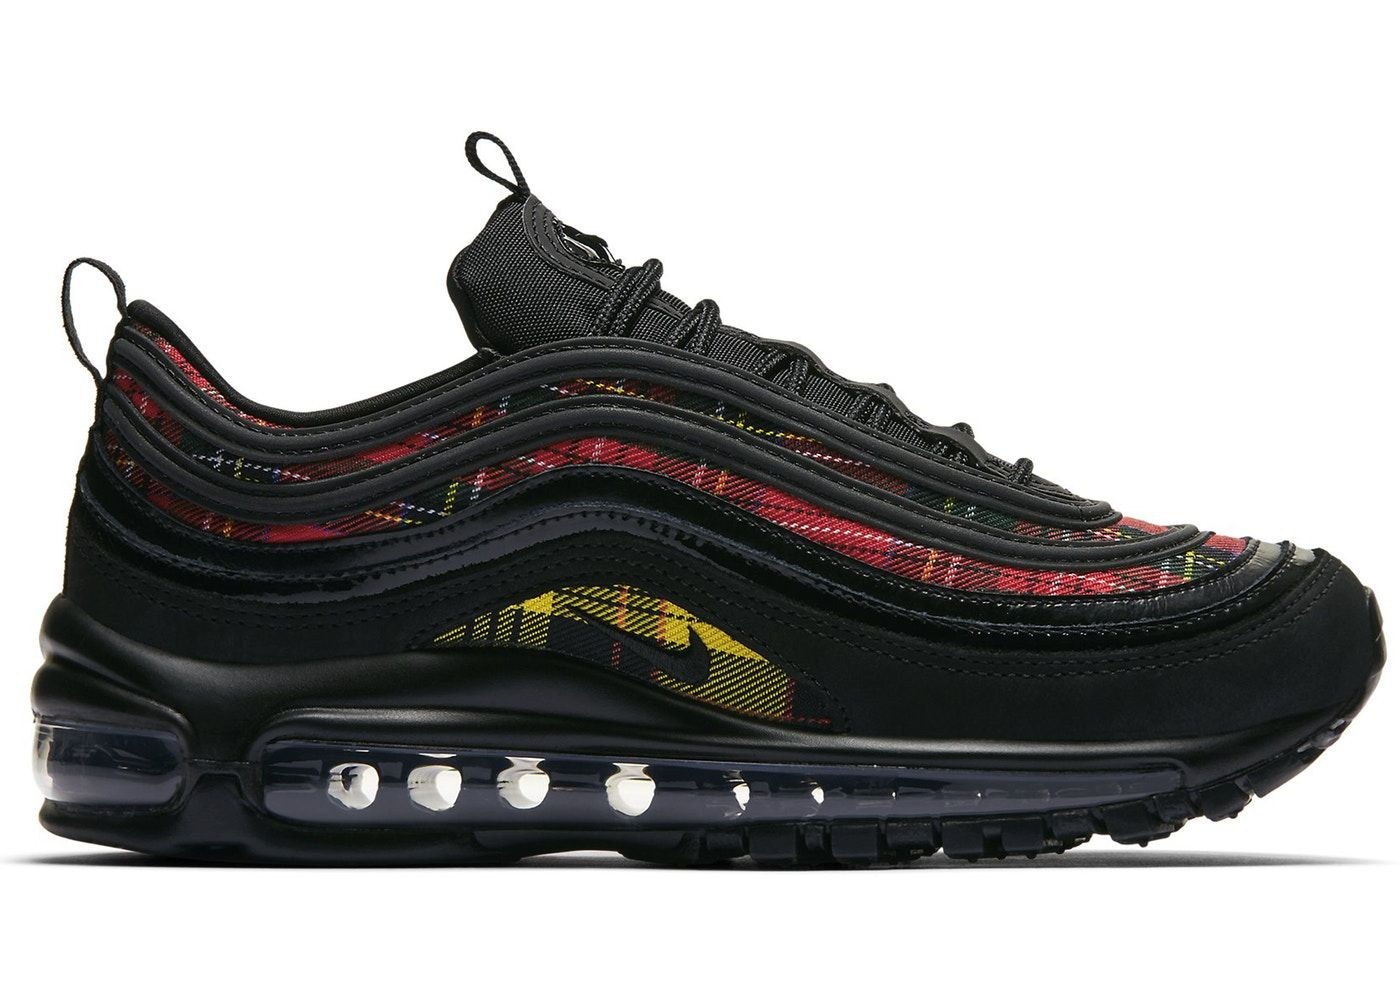 bf2d1acb0309 Check out the Air Max 97 Tartan Black (W) available on StockX